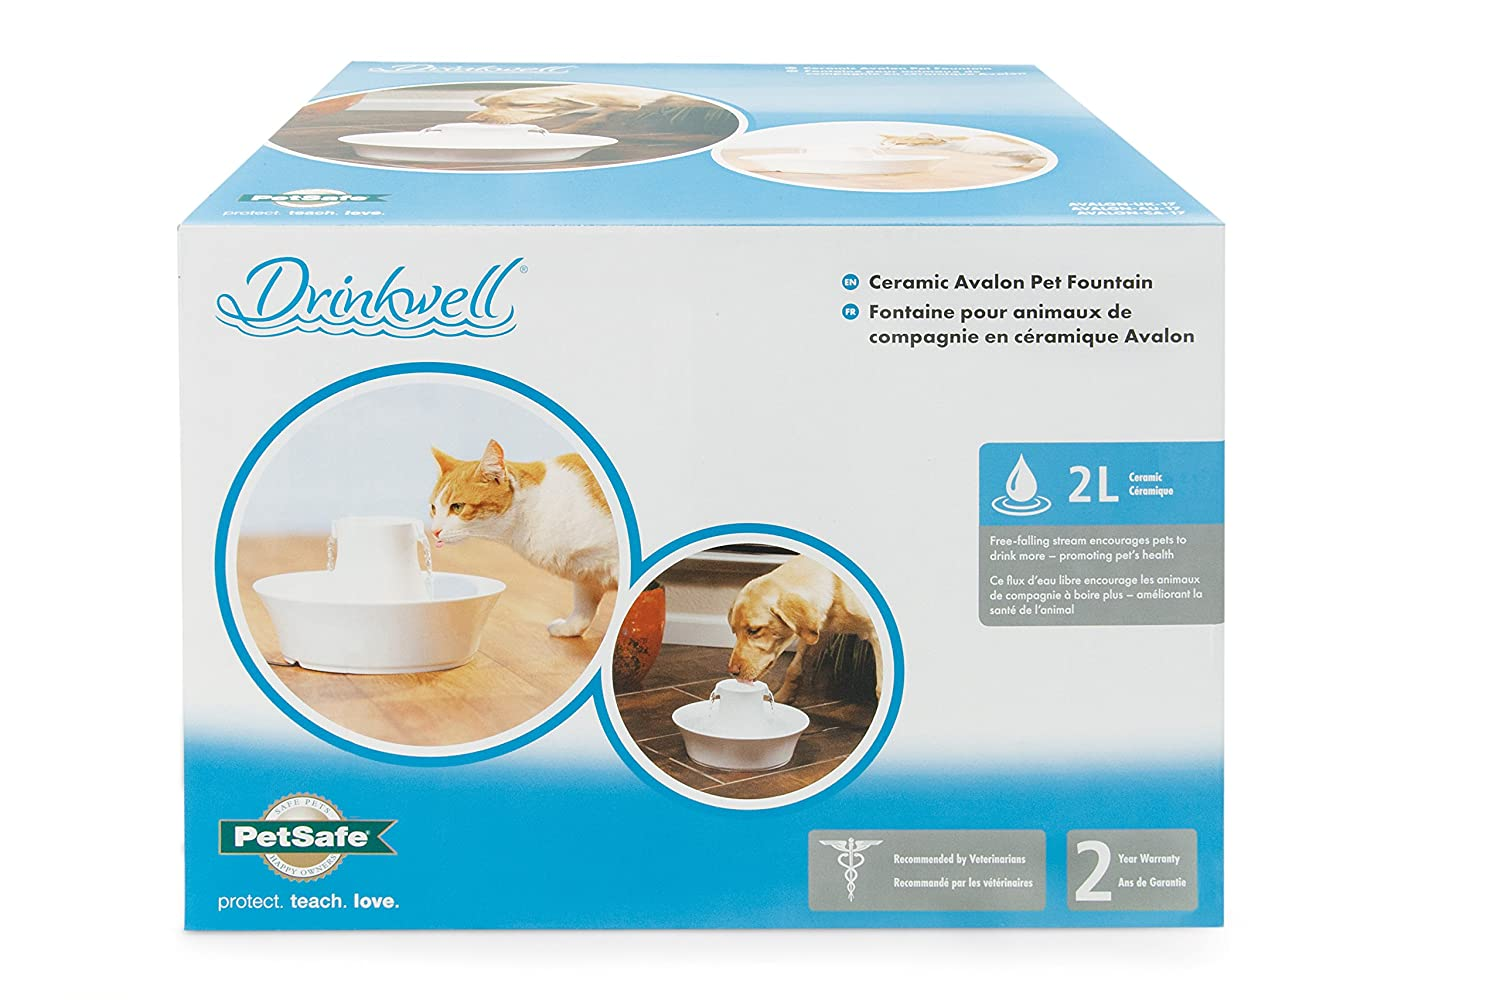 Filtres Pour Fontaine à Eau Petsafe Drinkwell Chien Chat Animal Animaux Lot X10 Buy One Get One Free Cat Supplies